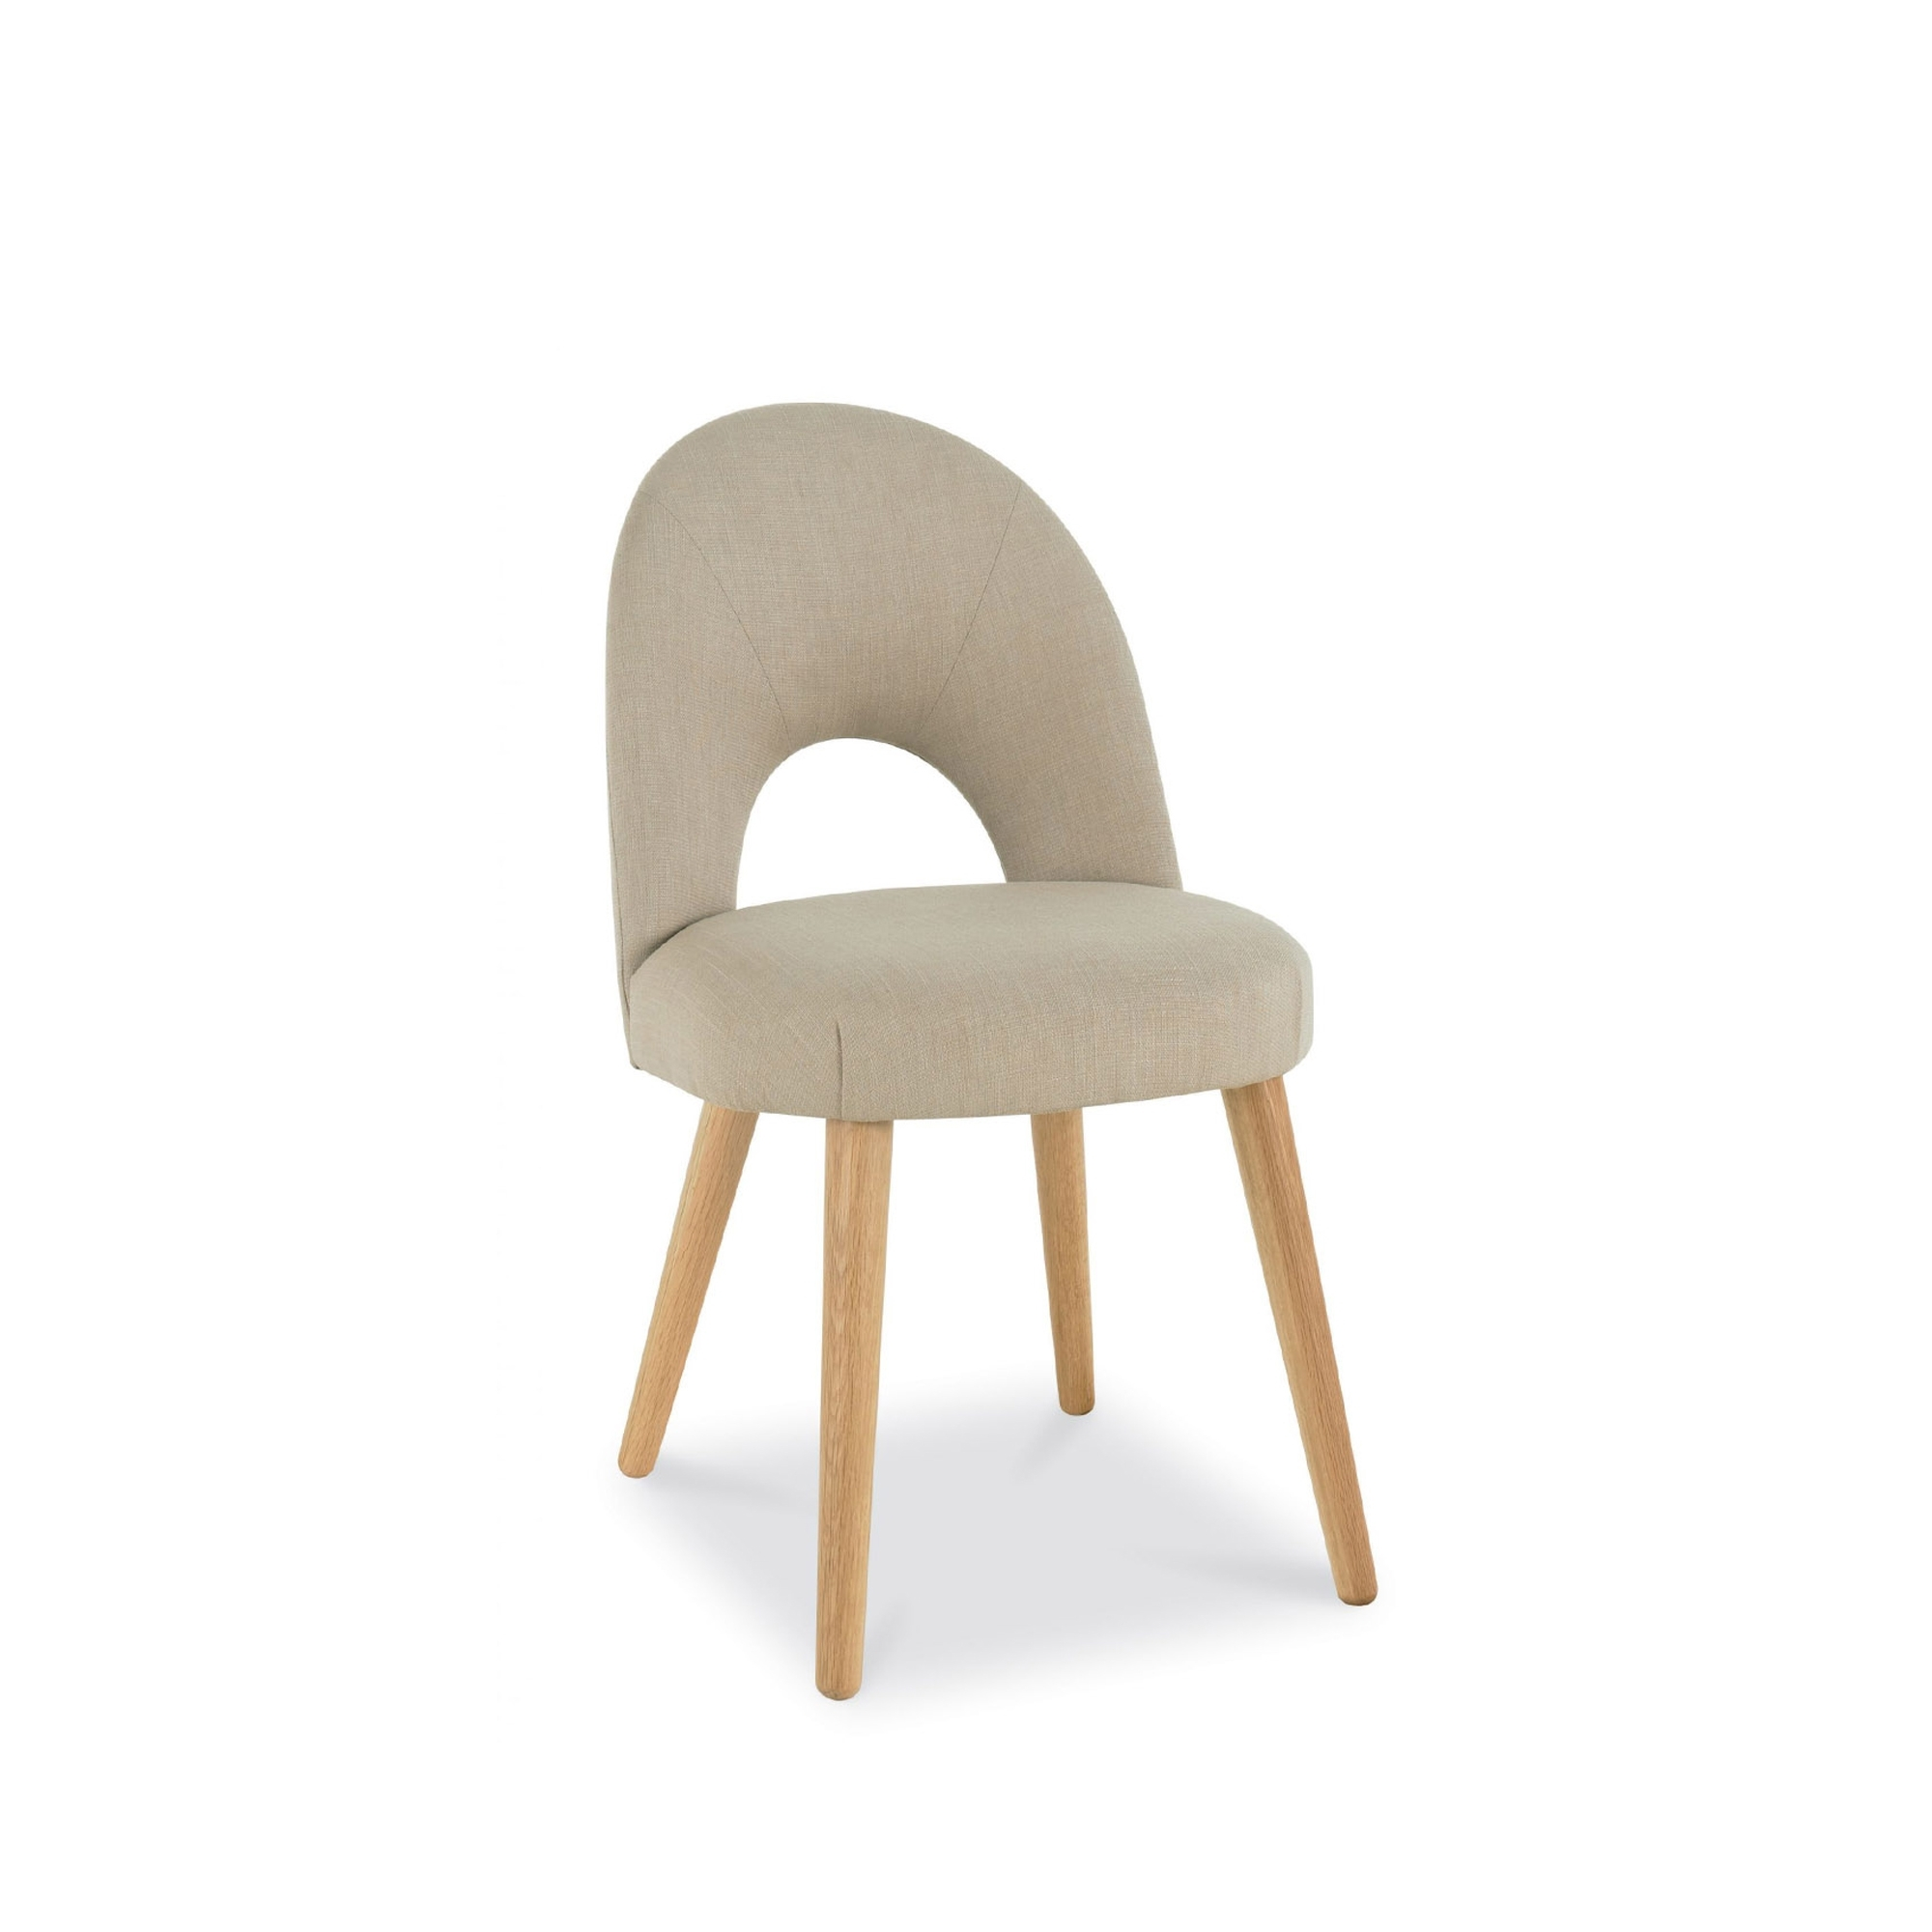 Cookes Collection Norway Oak Upholstered Chair In Stone